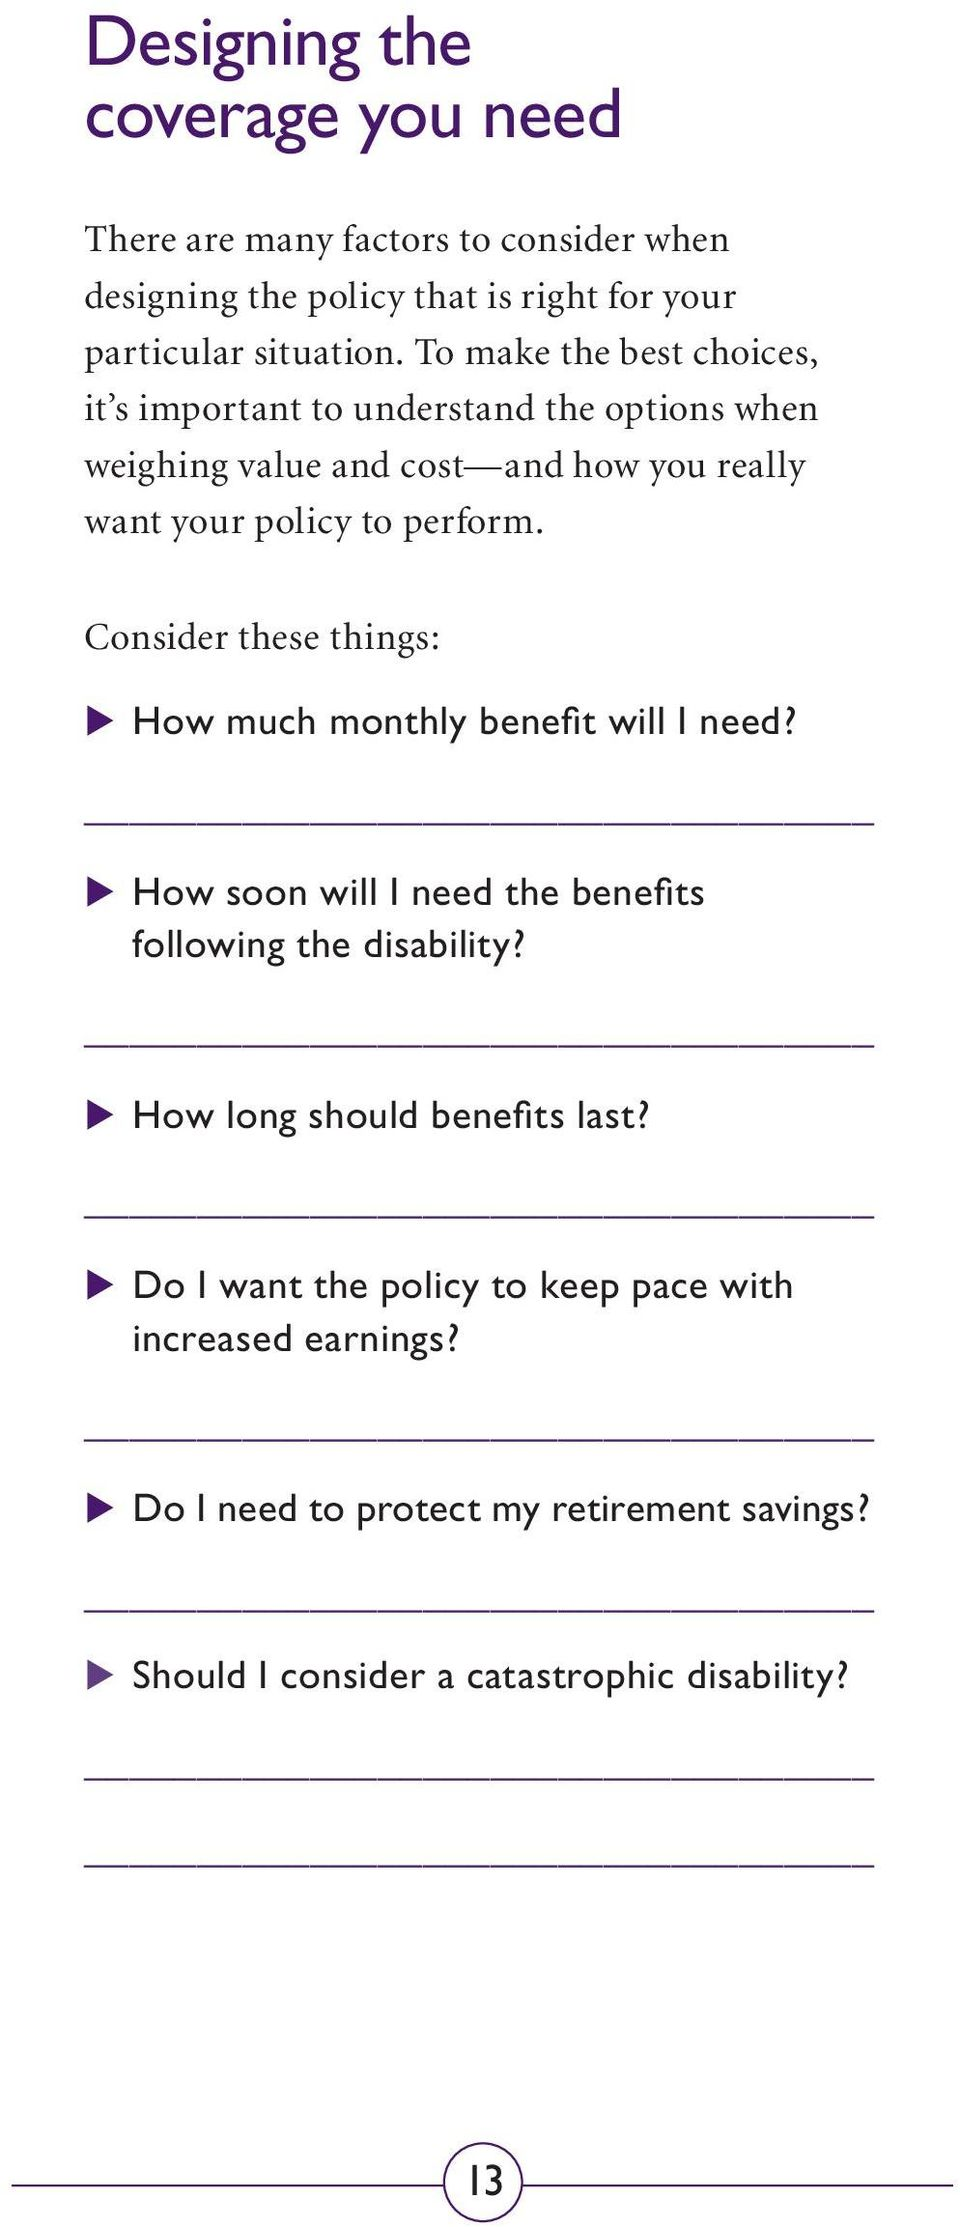 Consider these things: _How much monthly benefit will I need? _ How soon will I need the benefits following the disability?